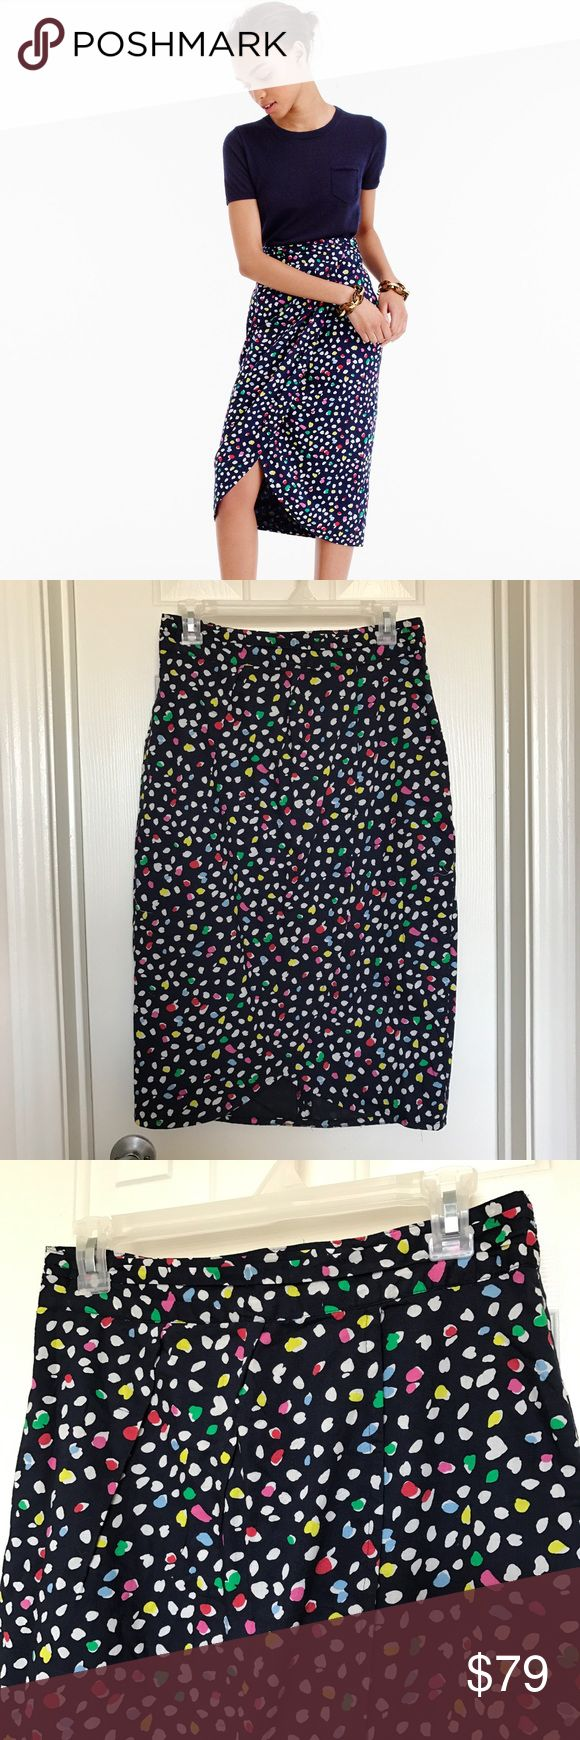 JCrew Ratti Happy Cat Tulip Pencil Skirt This is a beautiful, fun JCrew tulip skirt. The print is navy with colored polkadots and it is size 8. Brand new with tags! J. Crew Skirts